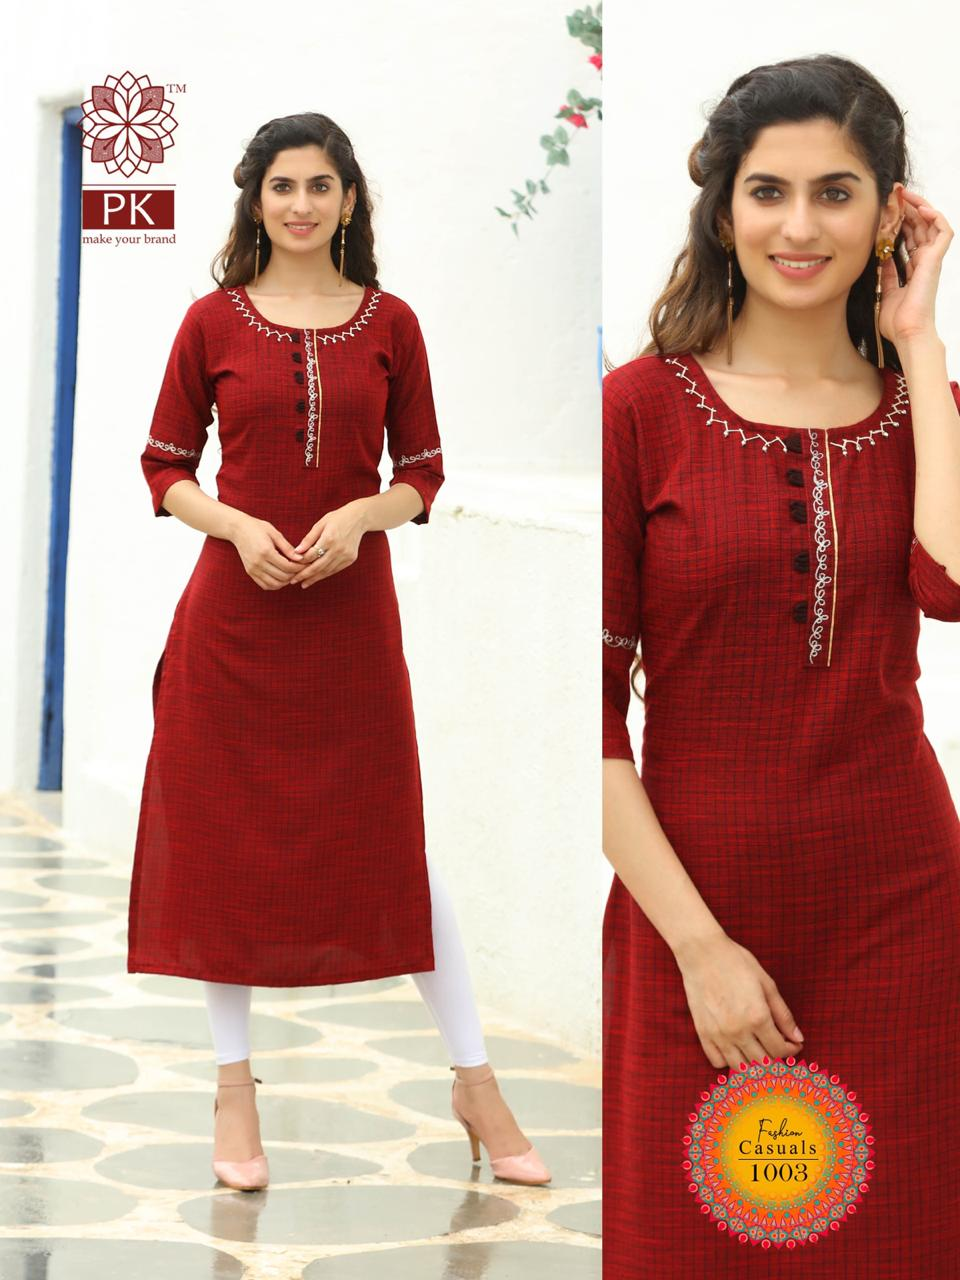 Pk Fashion Casuals Vol 1 Kurti Wholesale Catalog 6 Pcs 9 - Pk Fashion Casuals Vol 1 Kurti Wholesale Catalog 6 Pcs